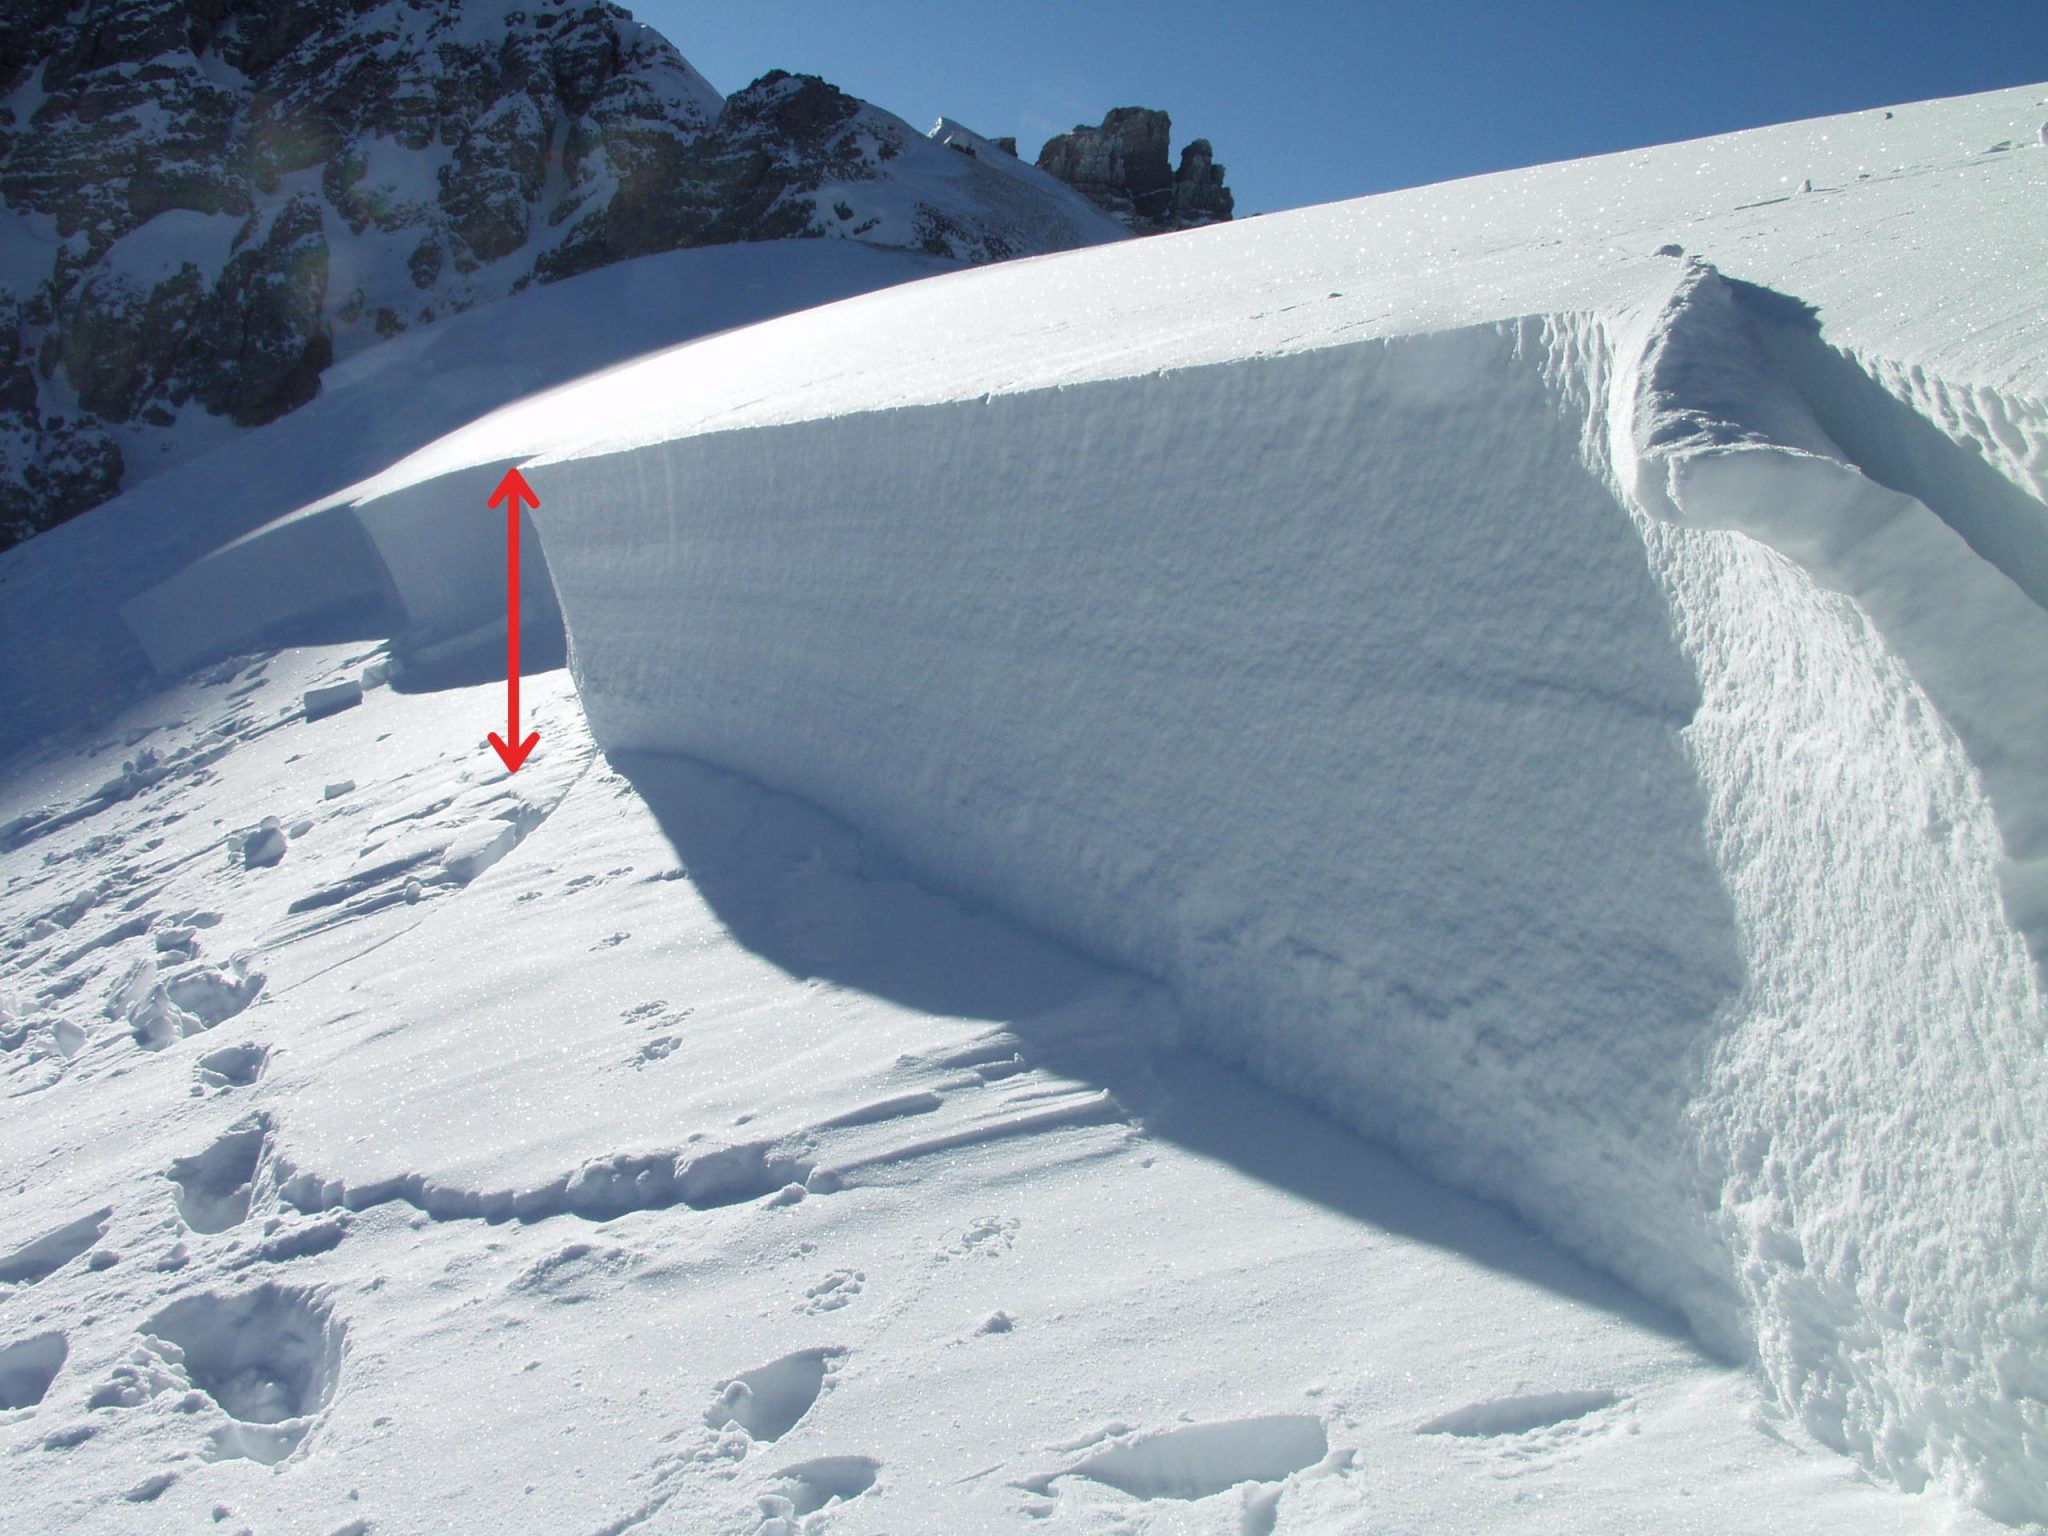 Glossary Fracture depth LWD Tirol | EAWS European Avalanche Warning Services